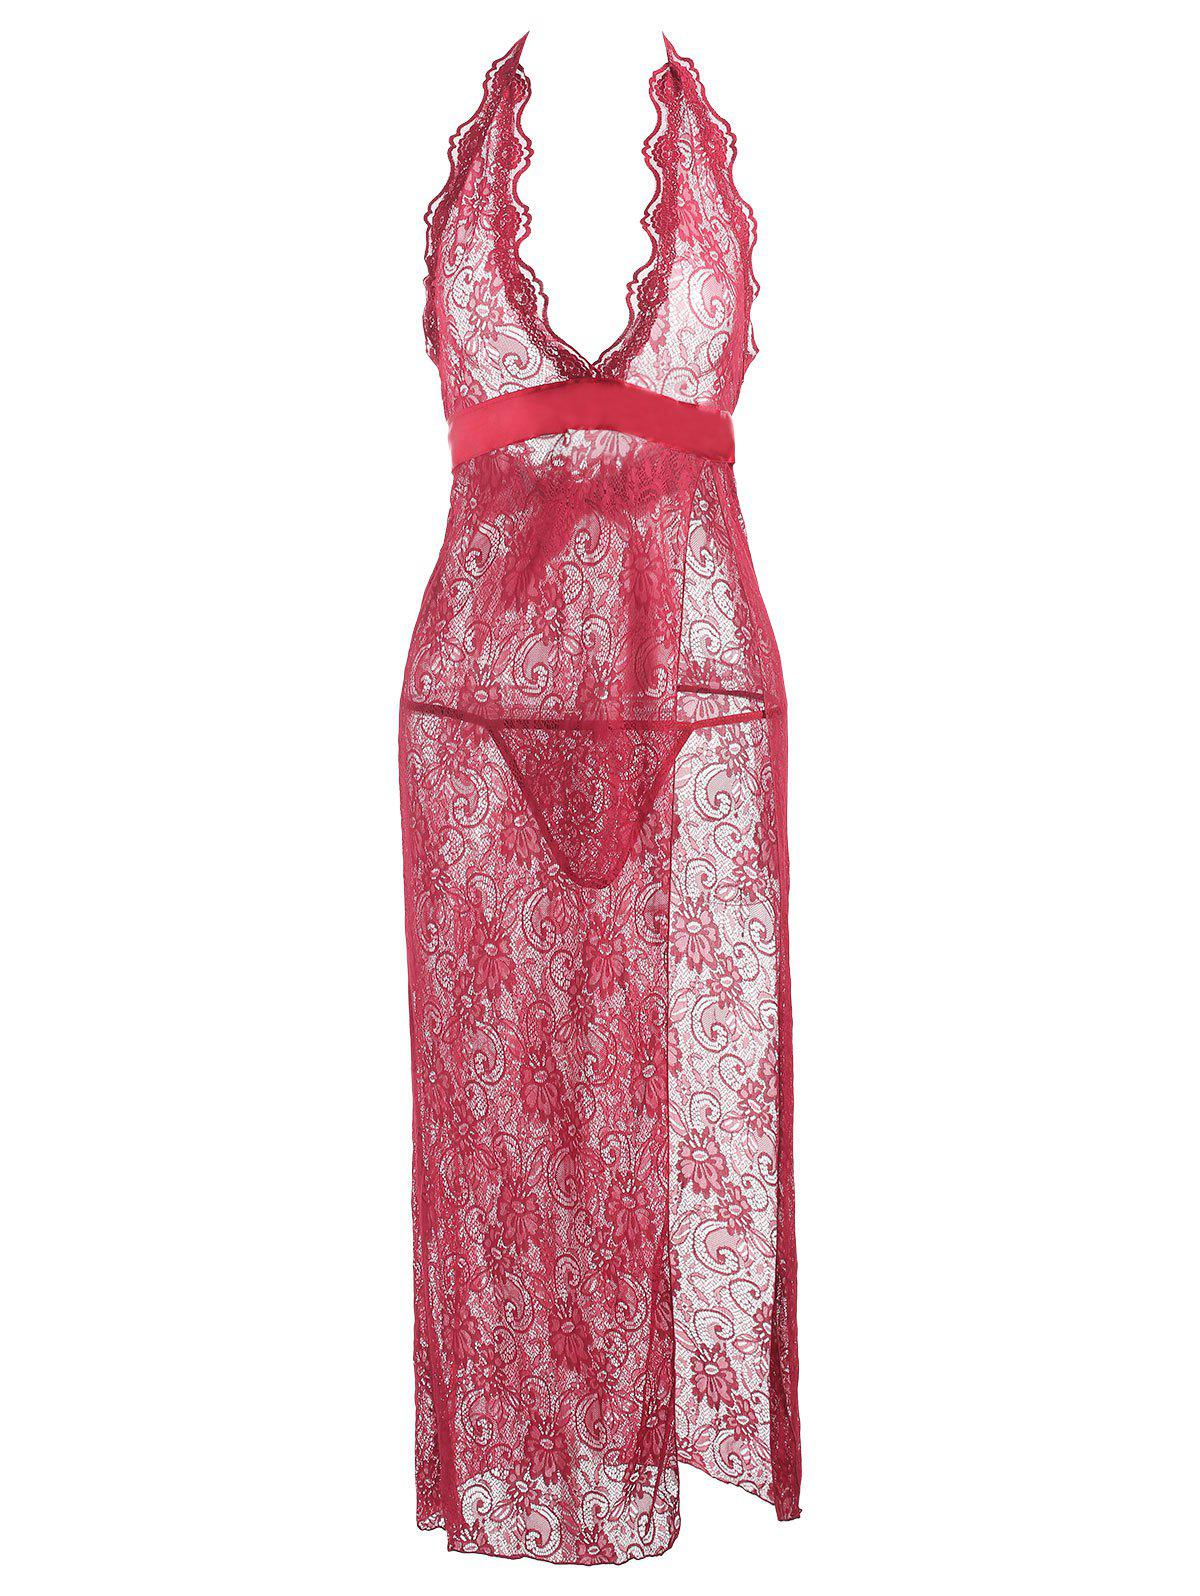 Lace Slit See Thru Long Lingerie Dress - WINE RED S